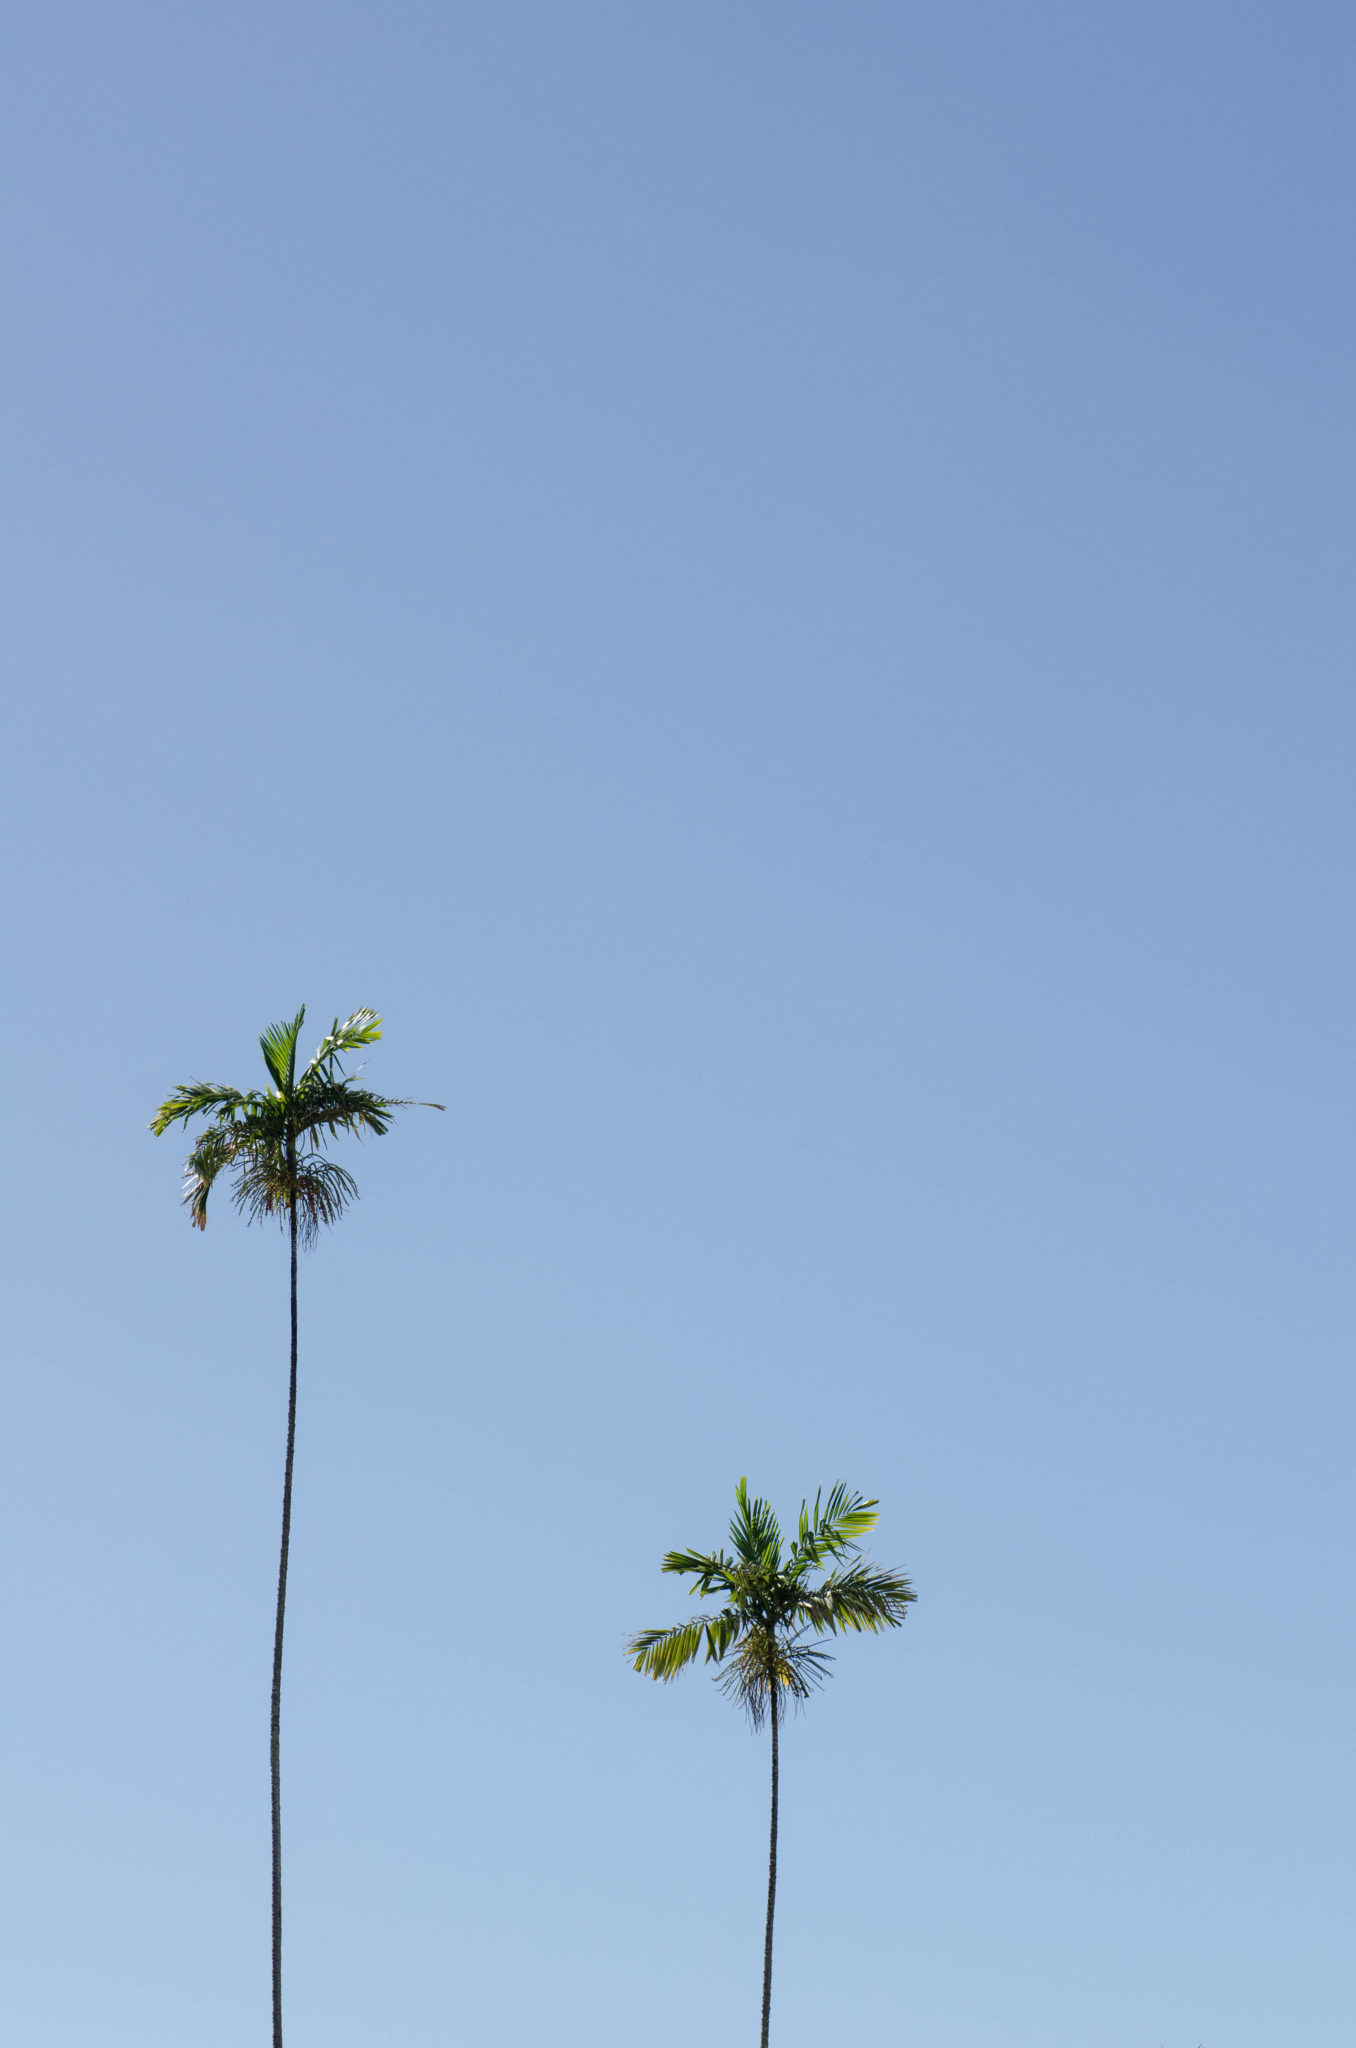 Hawaii Guide: Top things to do in Hawaii definitely involve watching palm trees.